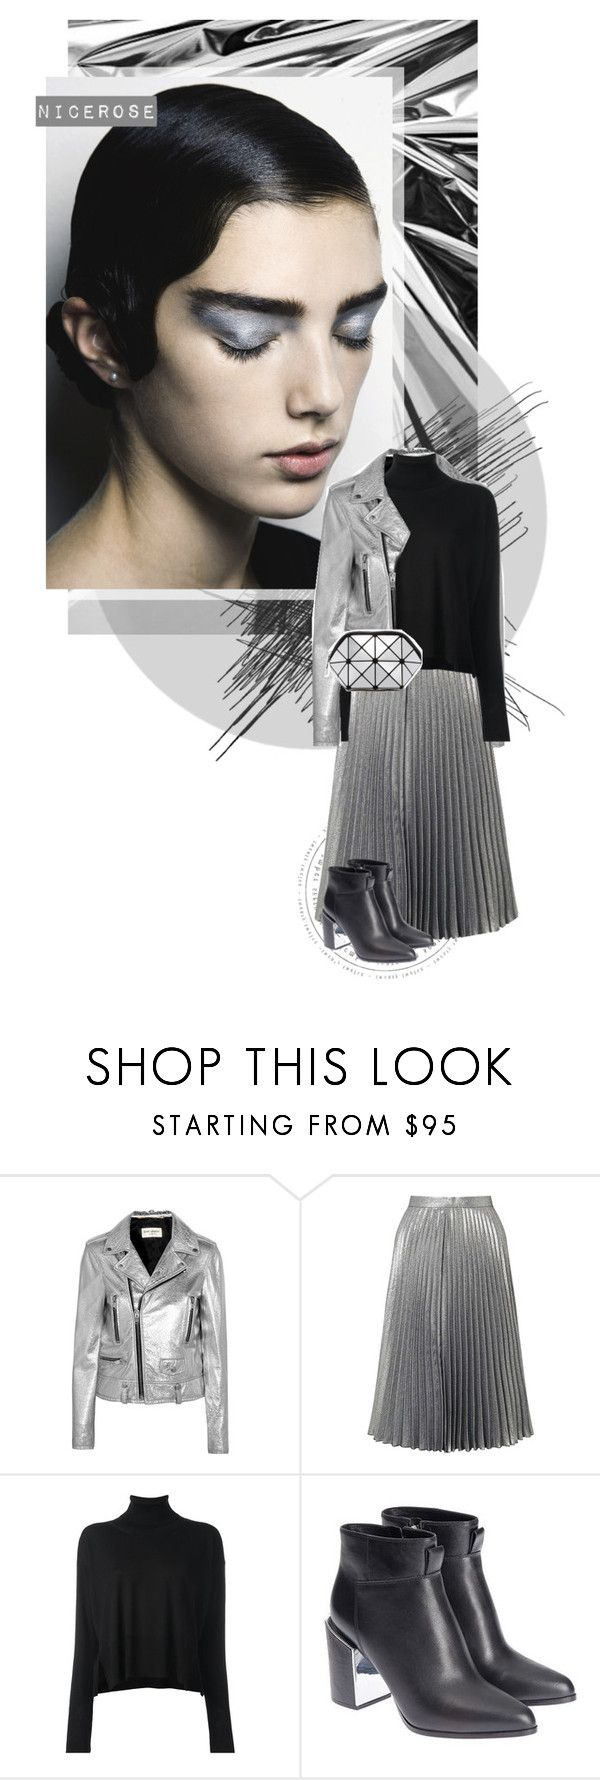 """""""s i l v e r"""" by nicerose ❤ liked on Polyvore featuring WAH, Yves Saint Laurent, Miss Selfridge, MM6 Maison Margiela, Kenzo, SR Squared by Sondra Roberts, black, Silver and metallic"""